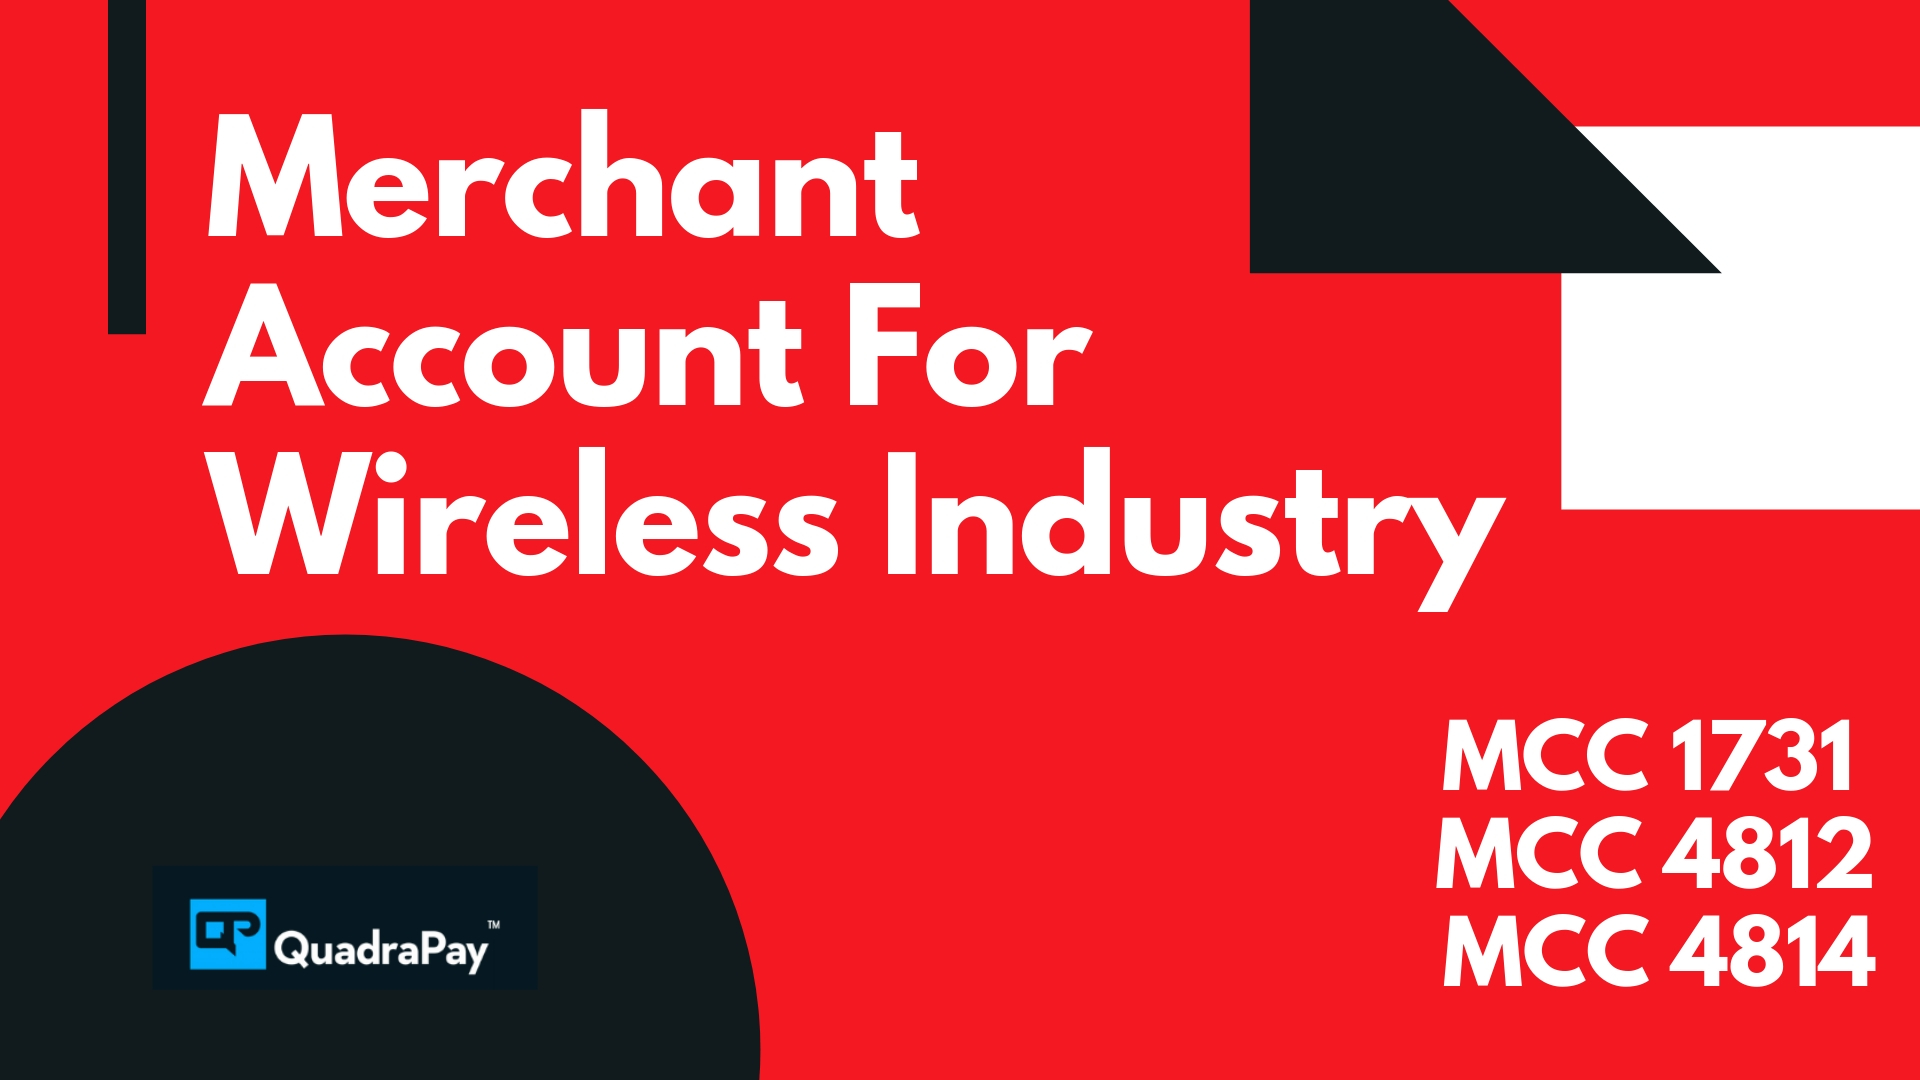 Merchant Account For Wireless Industry